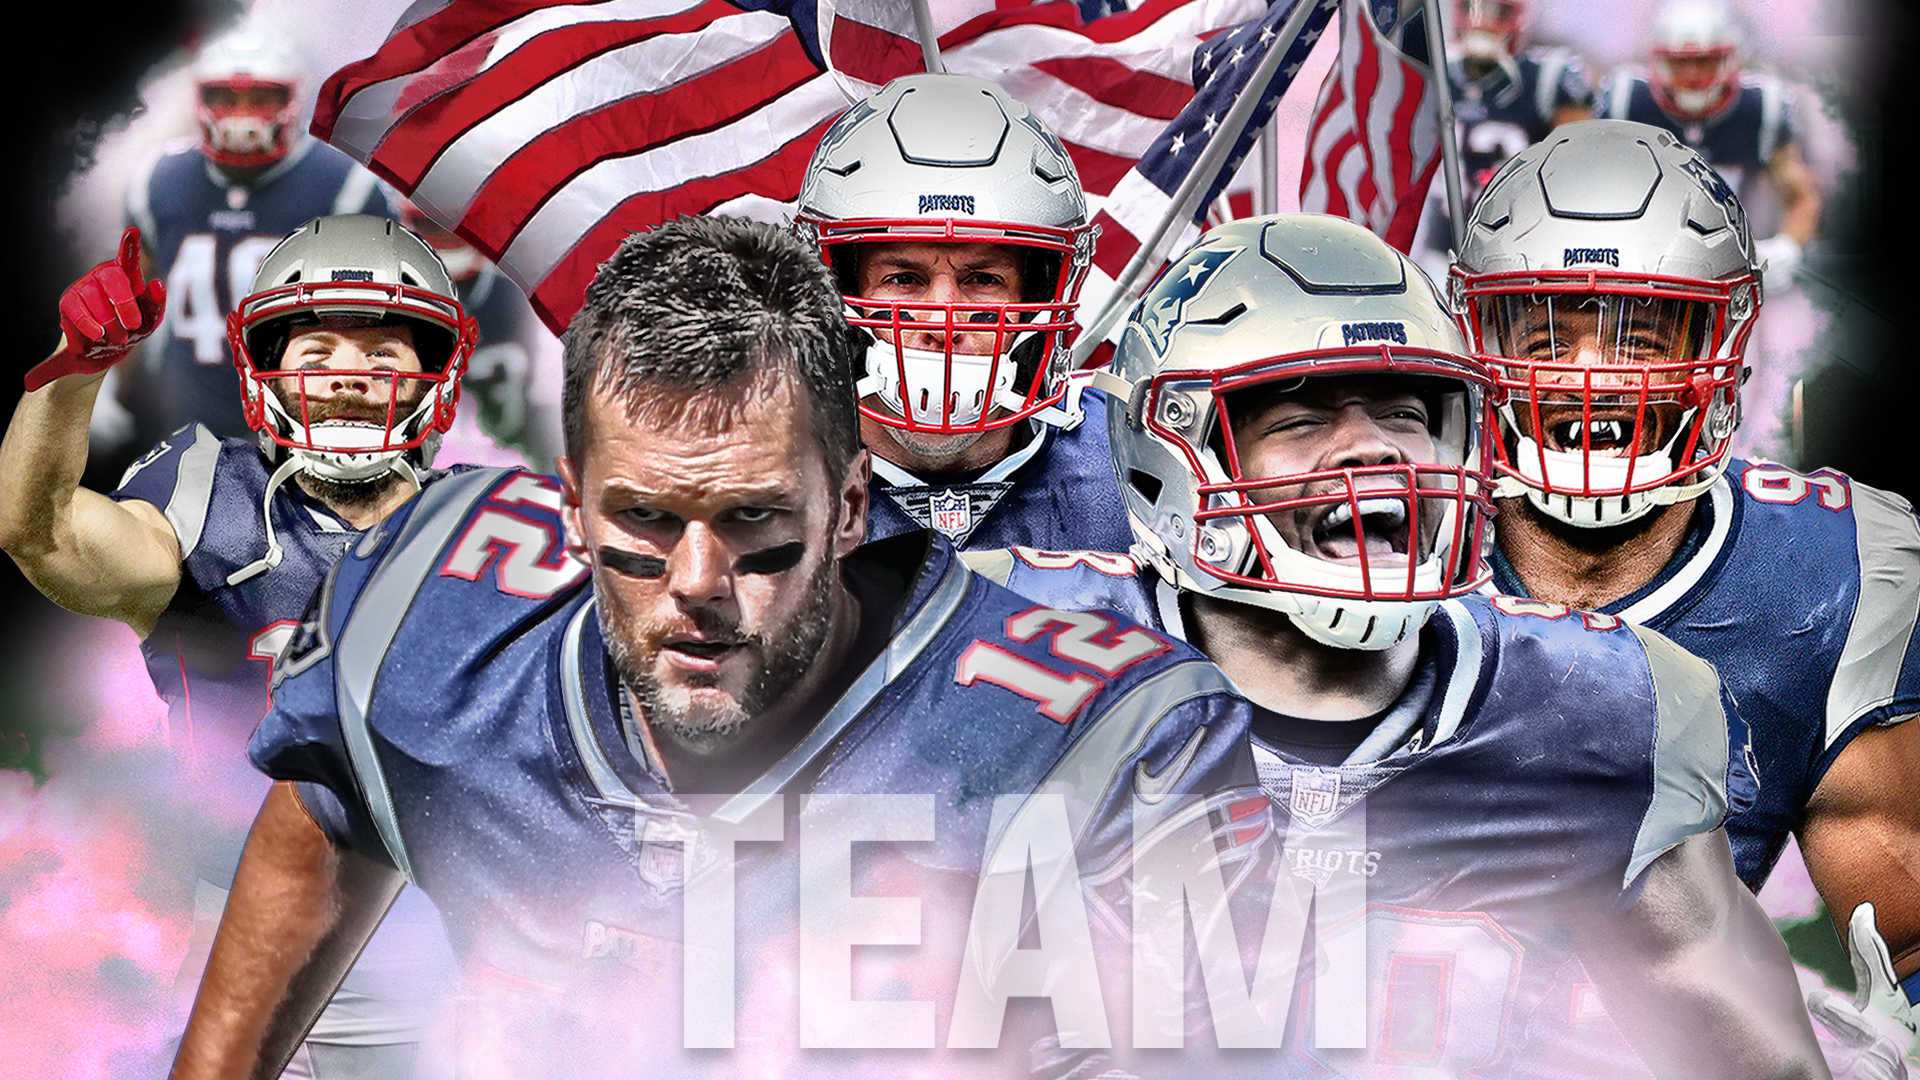 ... wallpaper Source · Official website of the New England Patriots